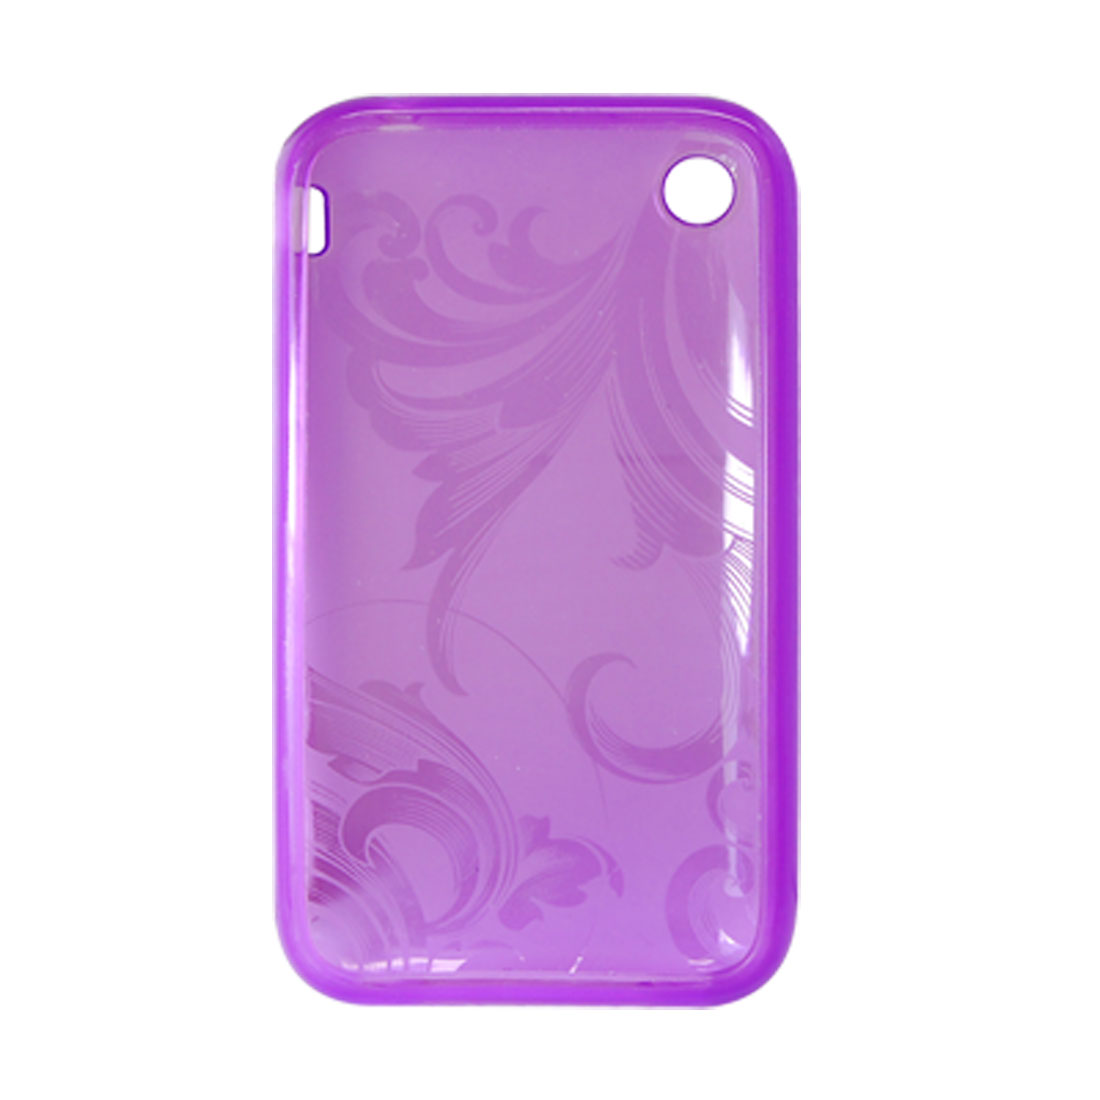 Flower Design Soft Plastic Case Cover Purple for Apple iPhone 3G